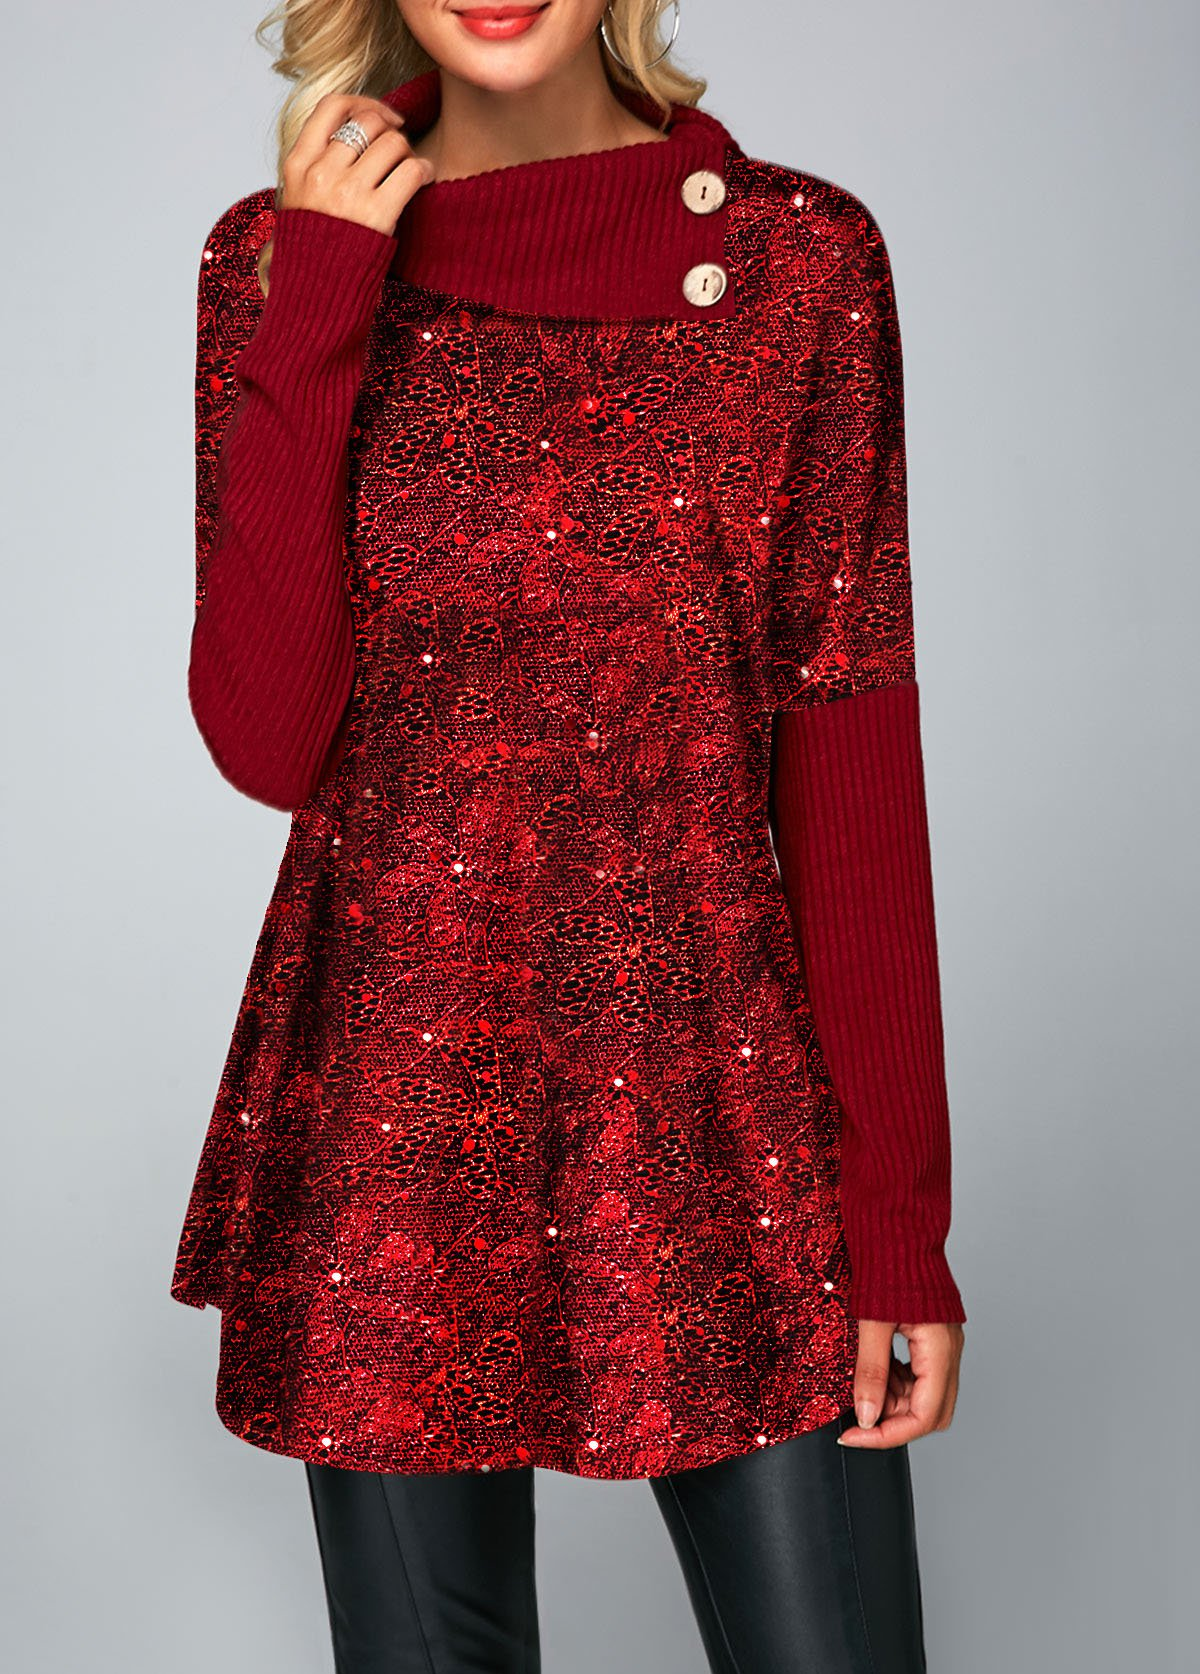 ROTITA Sequin Embellished Wine Red Button Detail T Shirt